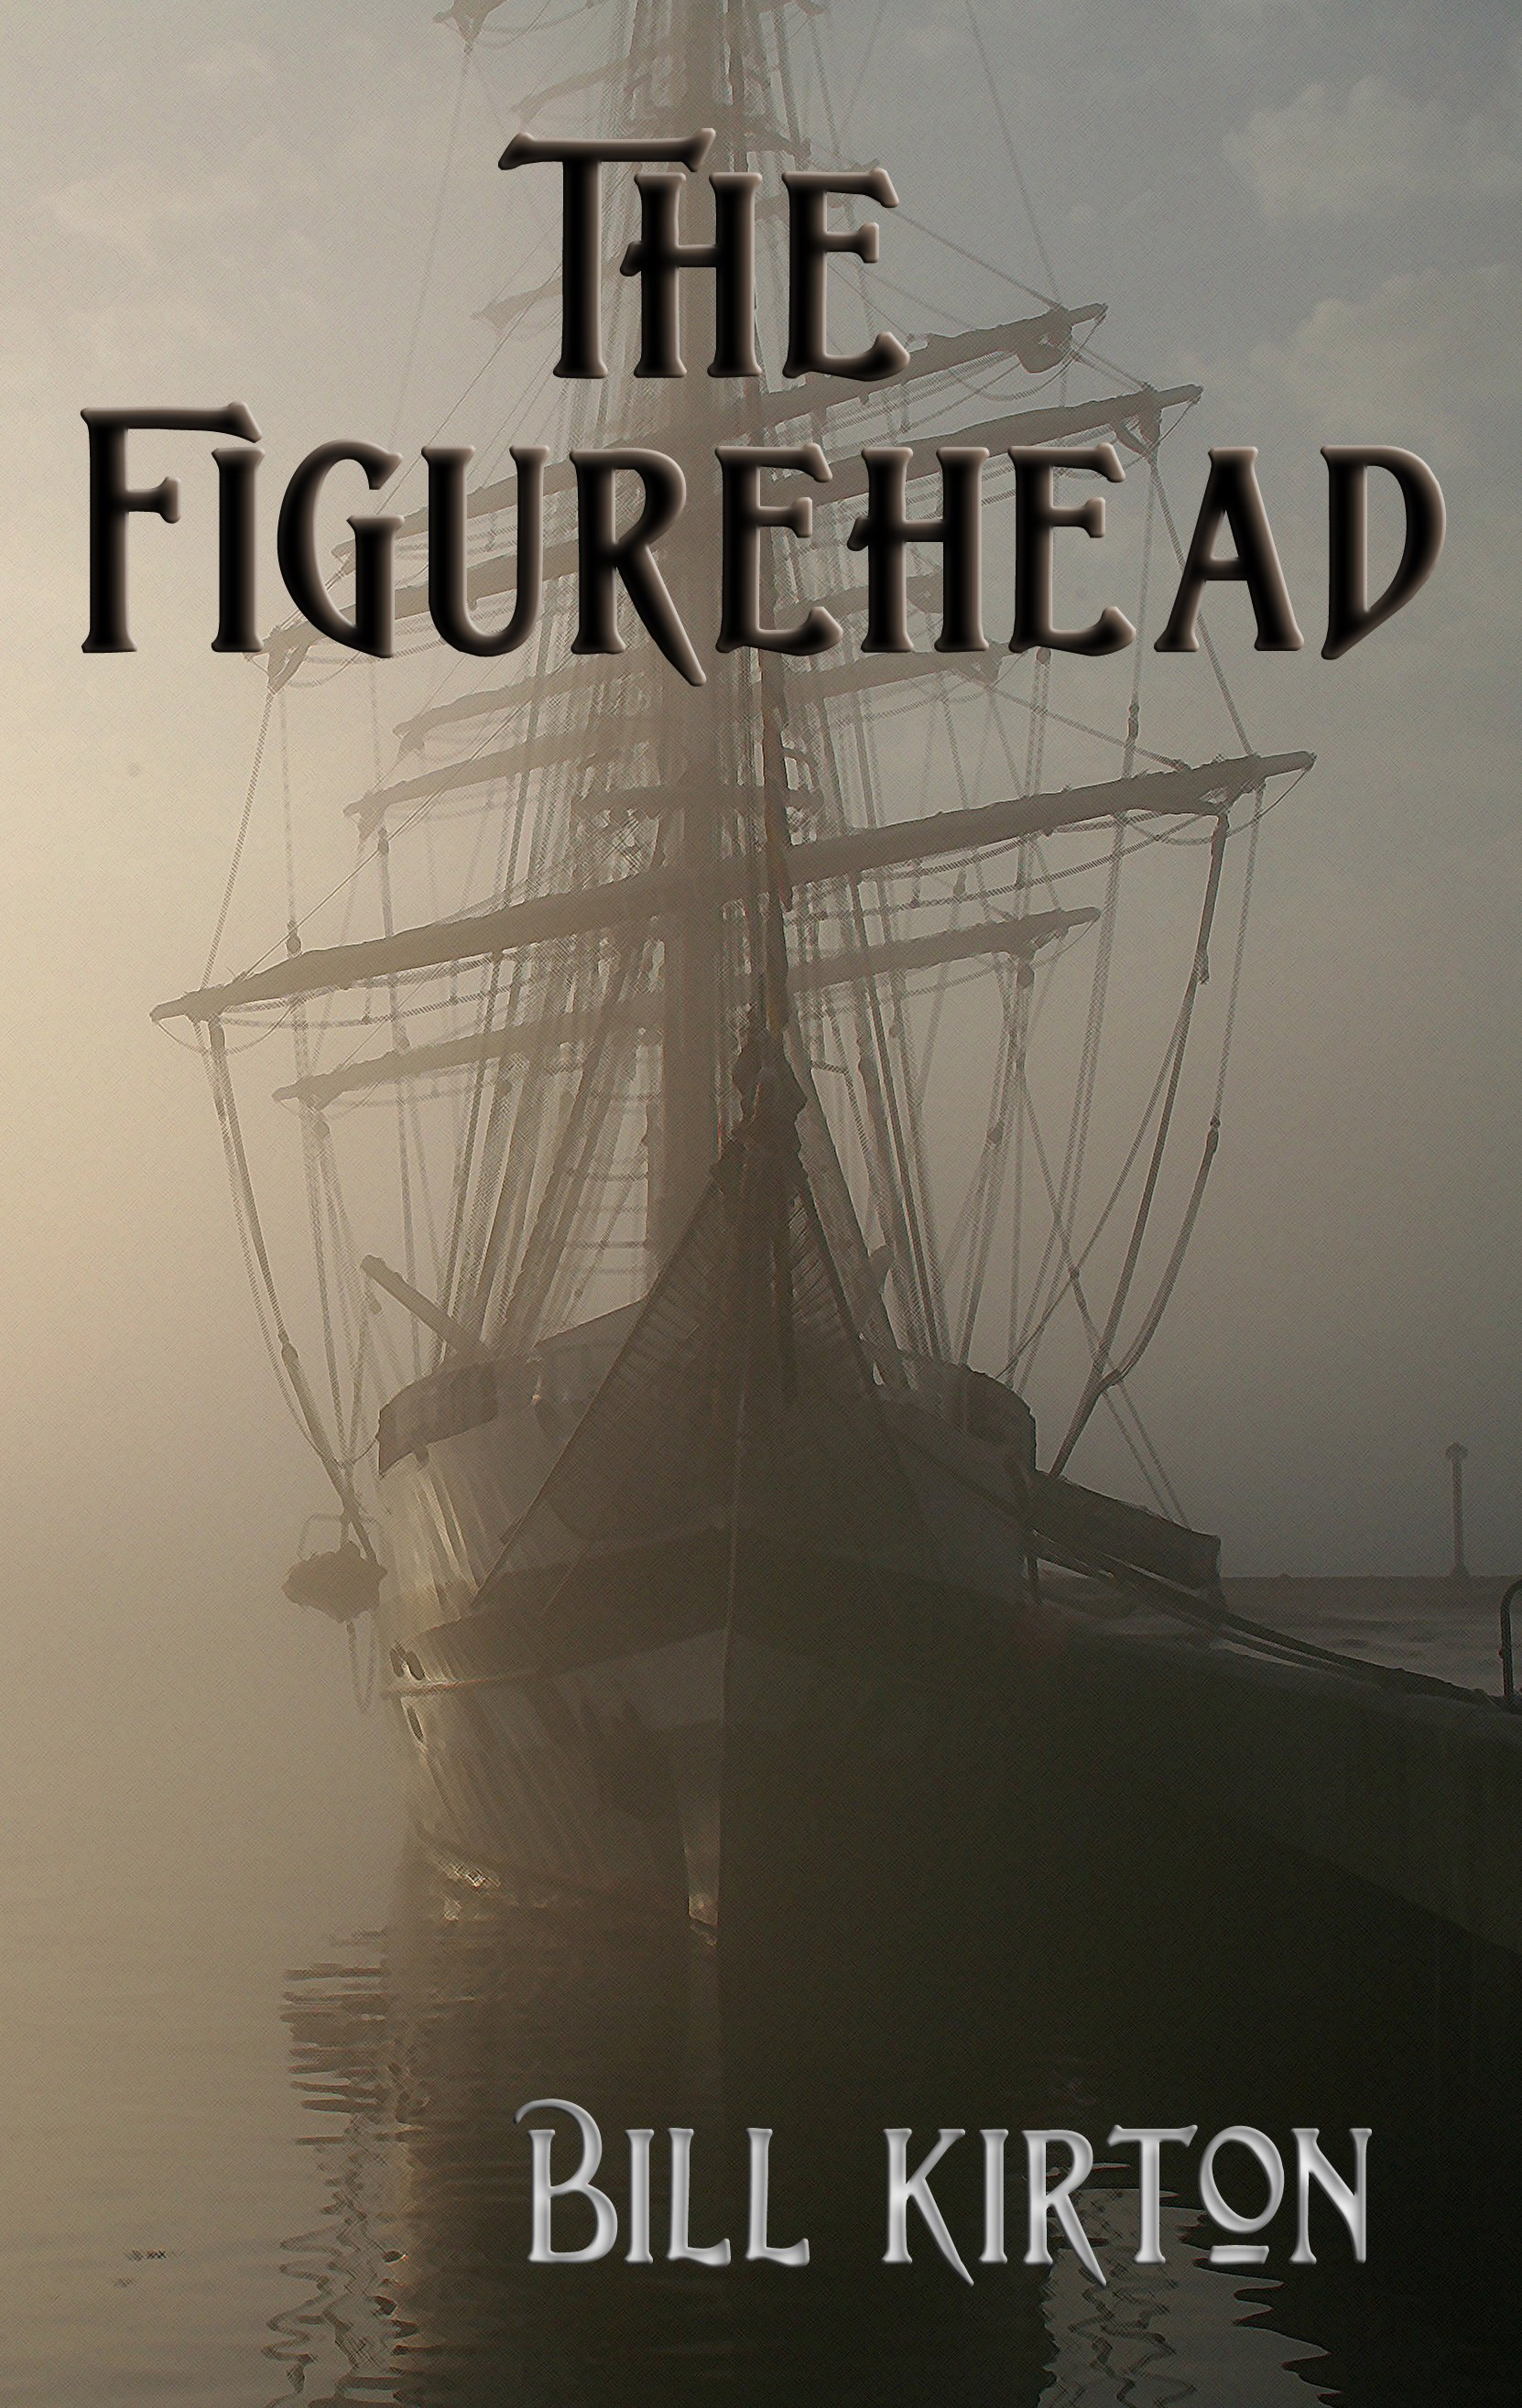 The Figurehead